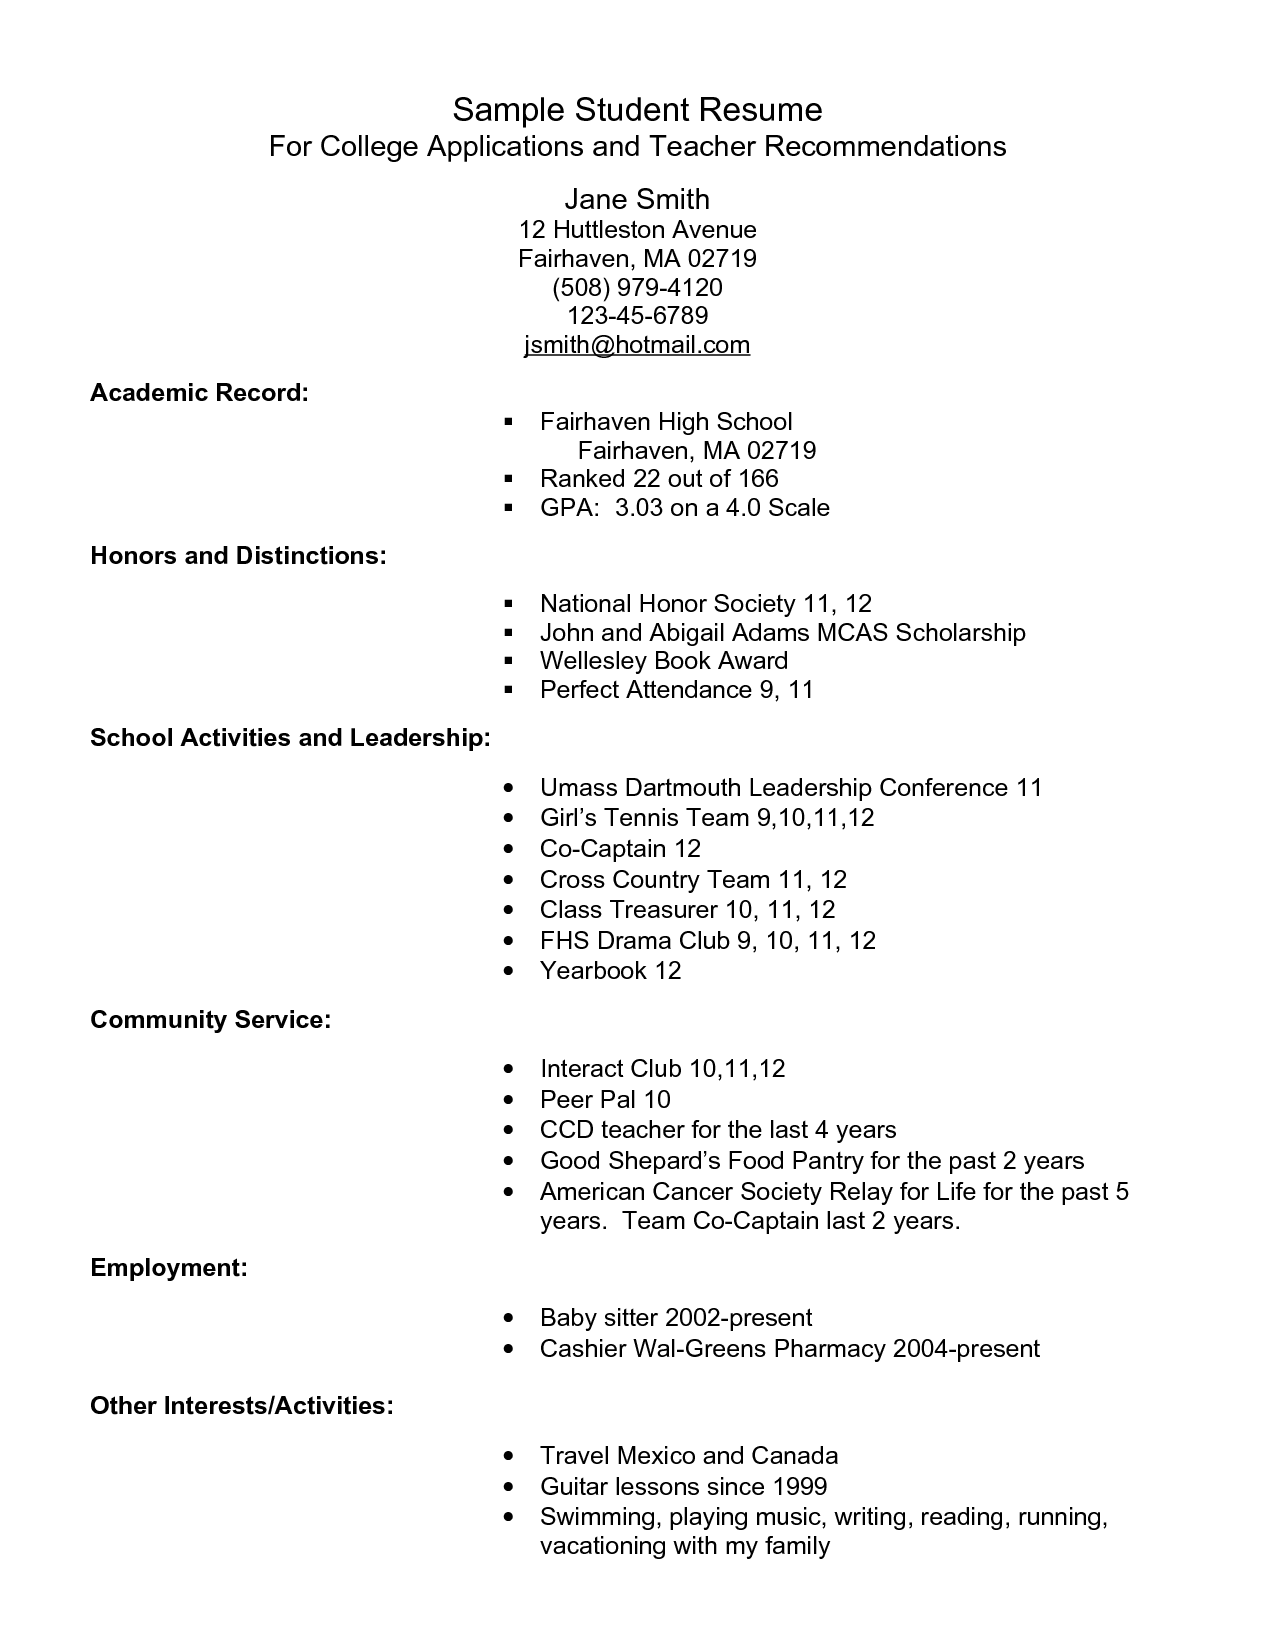 Resume Template Student Example Resume For High School Students For College Applications